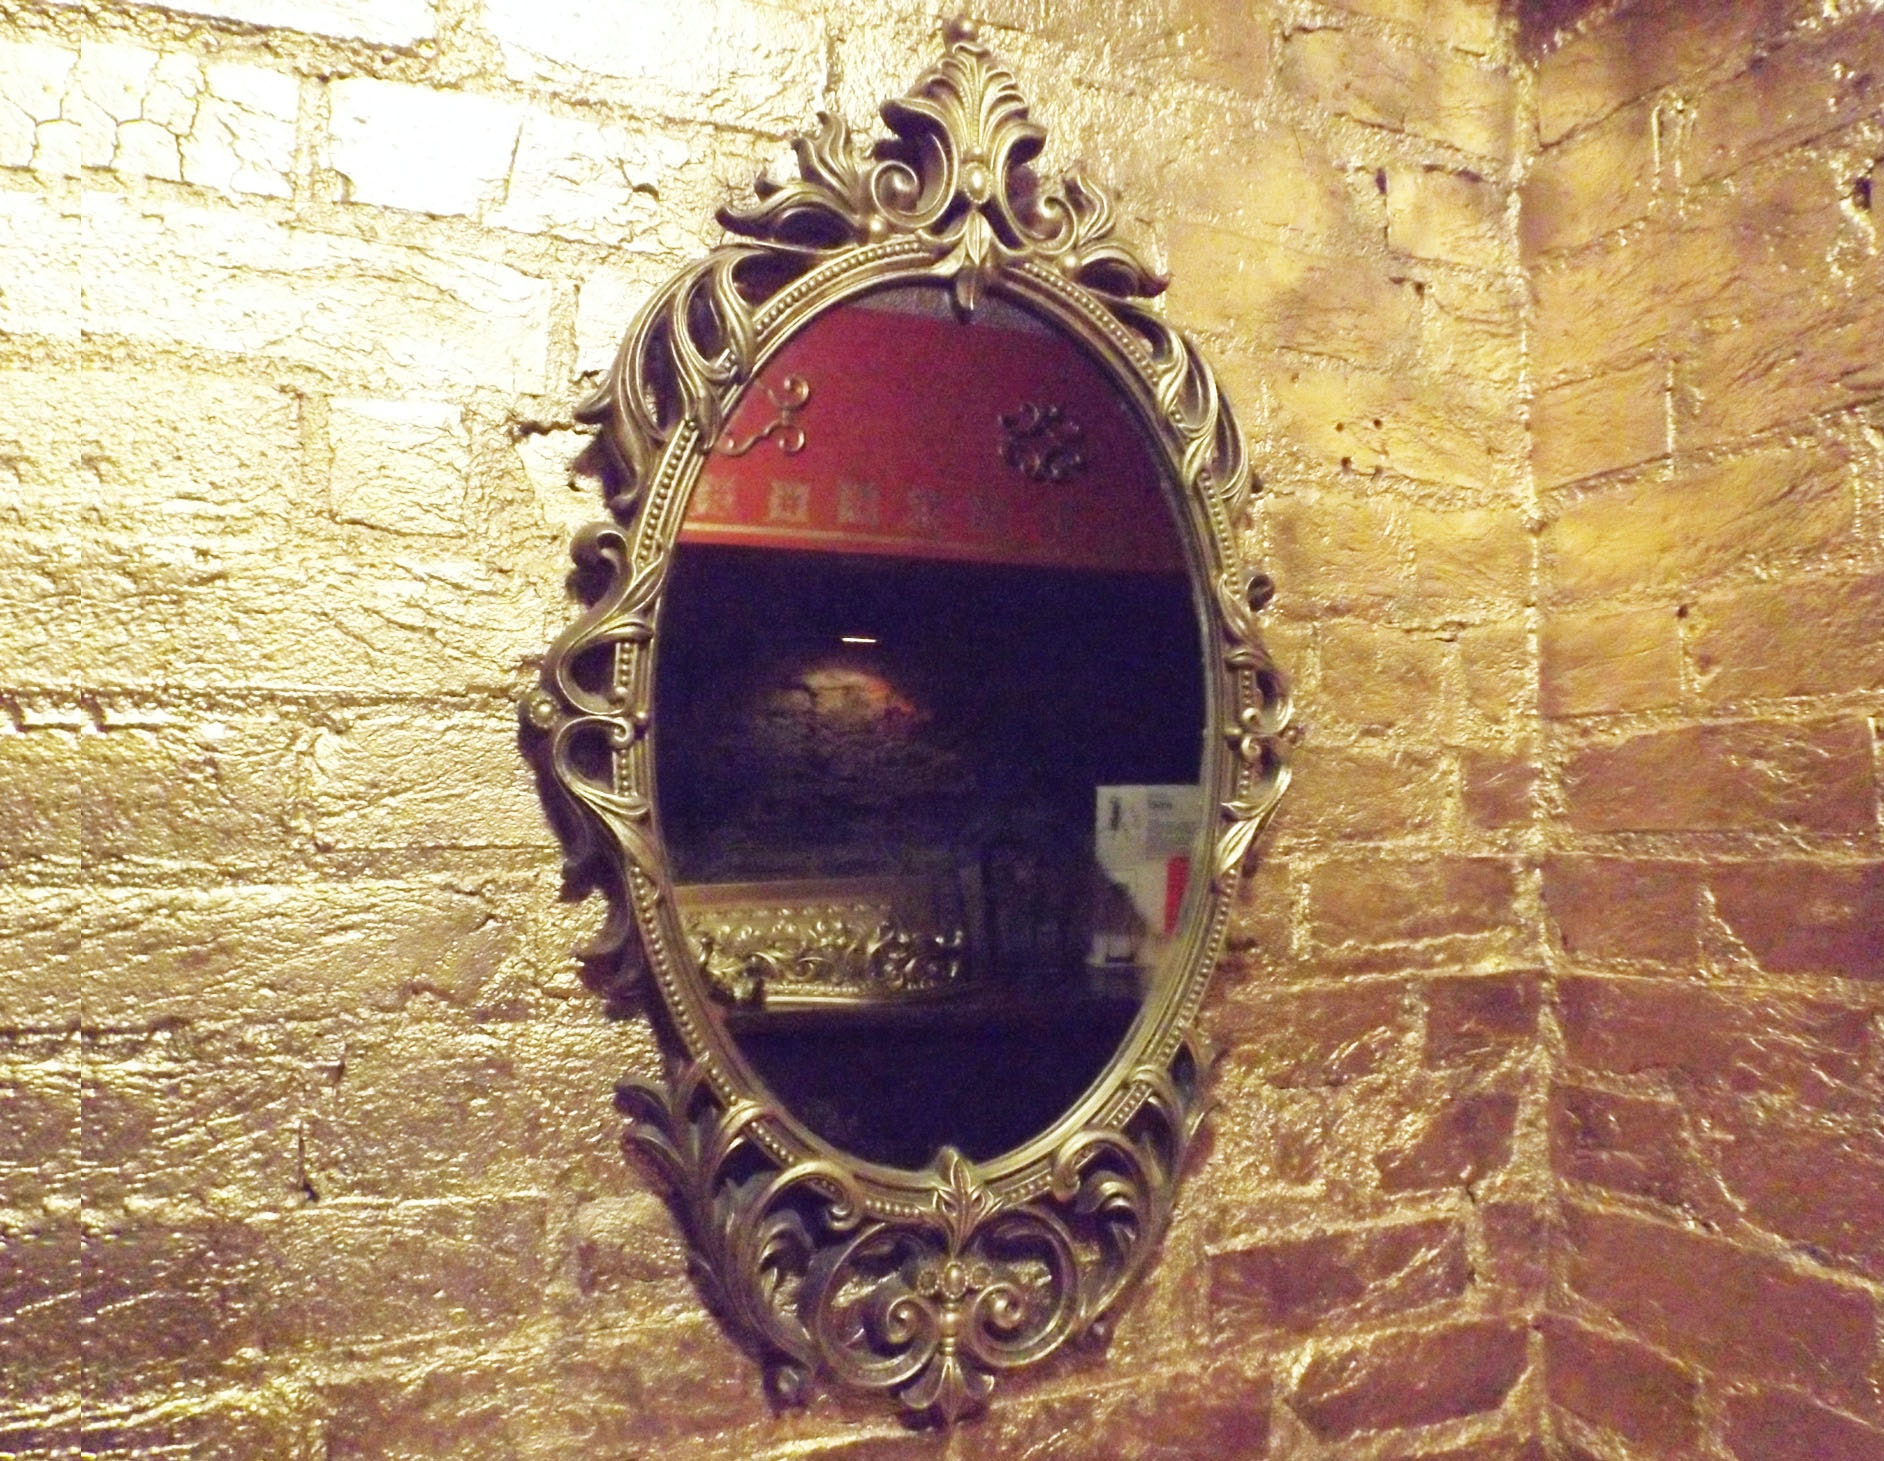 Ornate Gilt-Framed Mirror